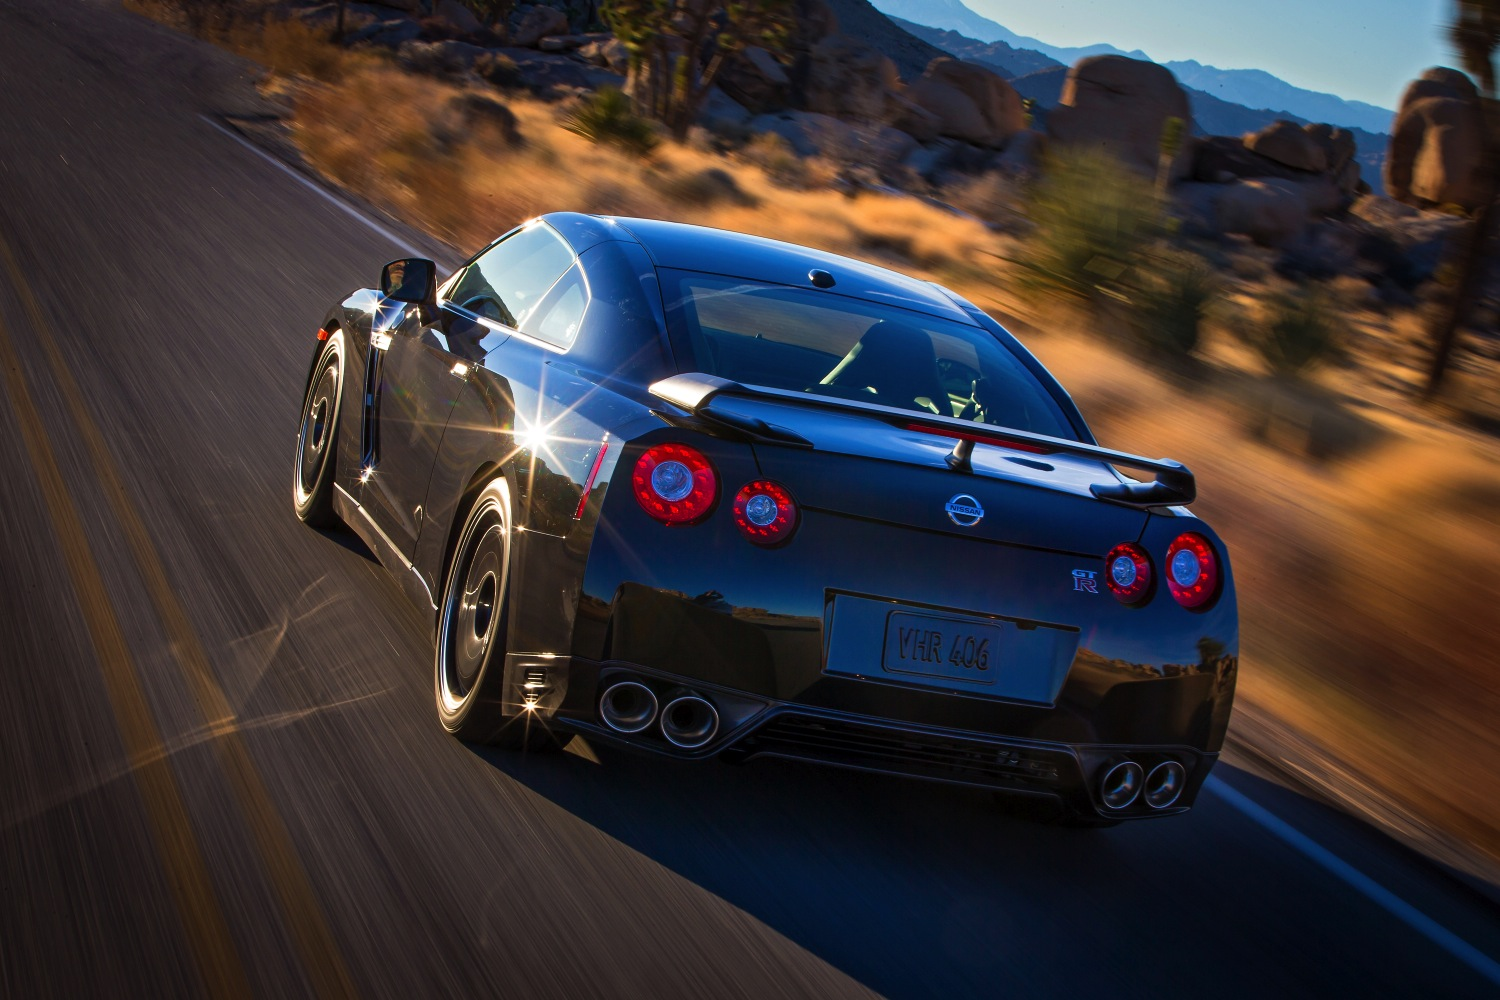 2014 Nissan Gtr Prices And Specs For Track Edition Black Gt R Performance Here We Have An Exhaust Filled Video Of The On Open Road Posted Side By With Model Year Pricing